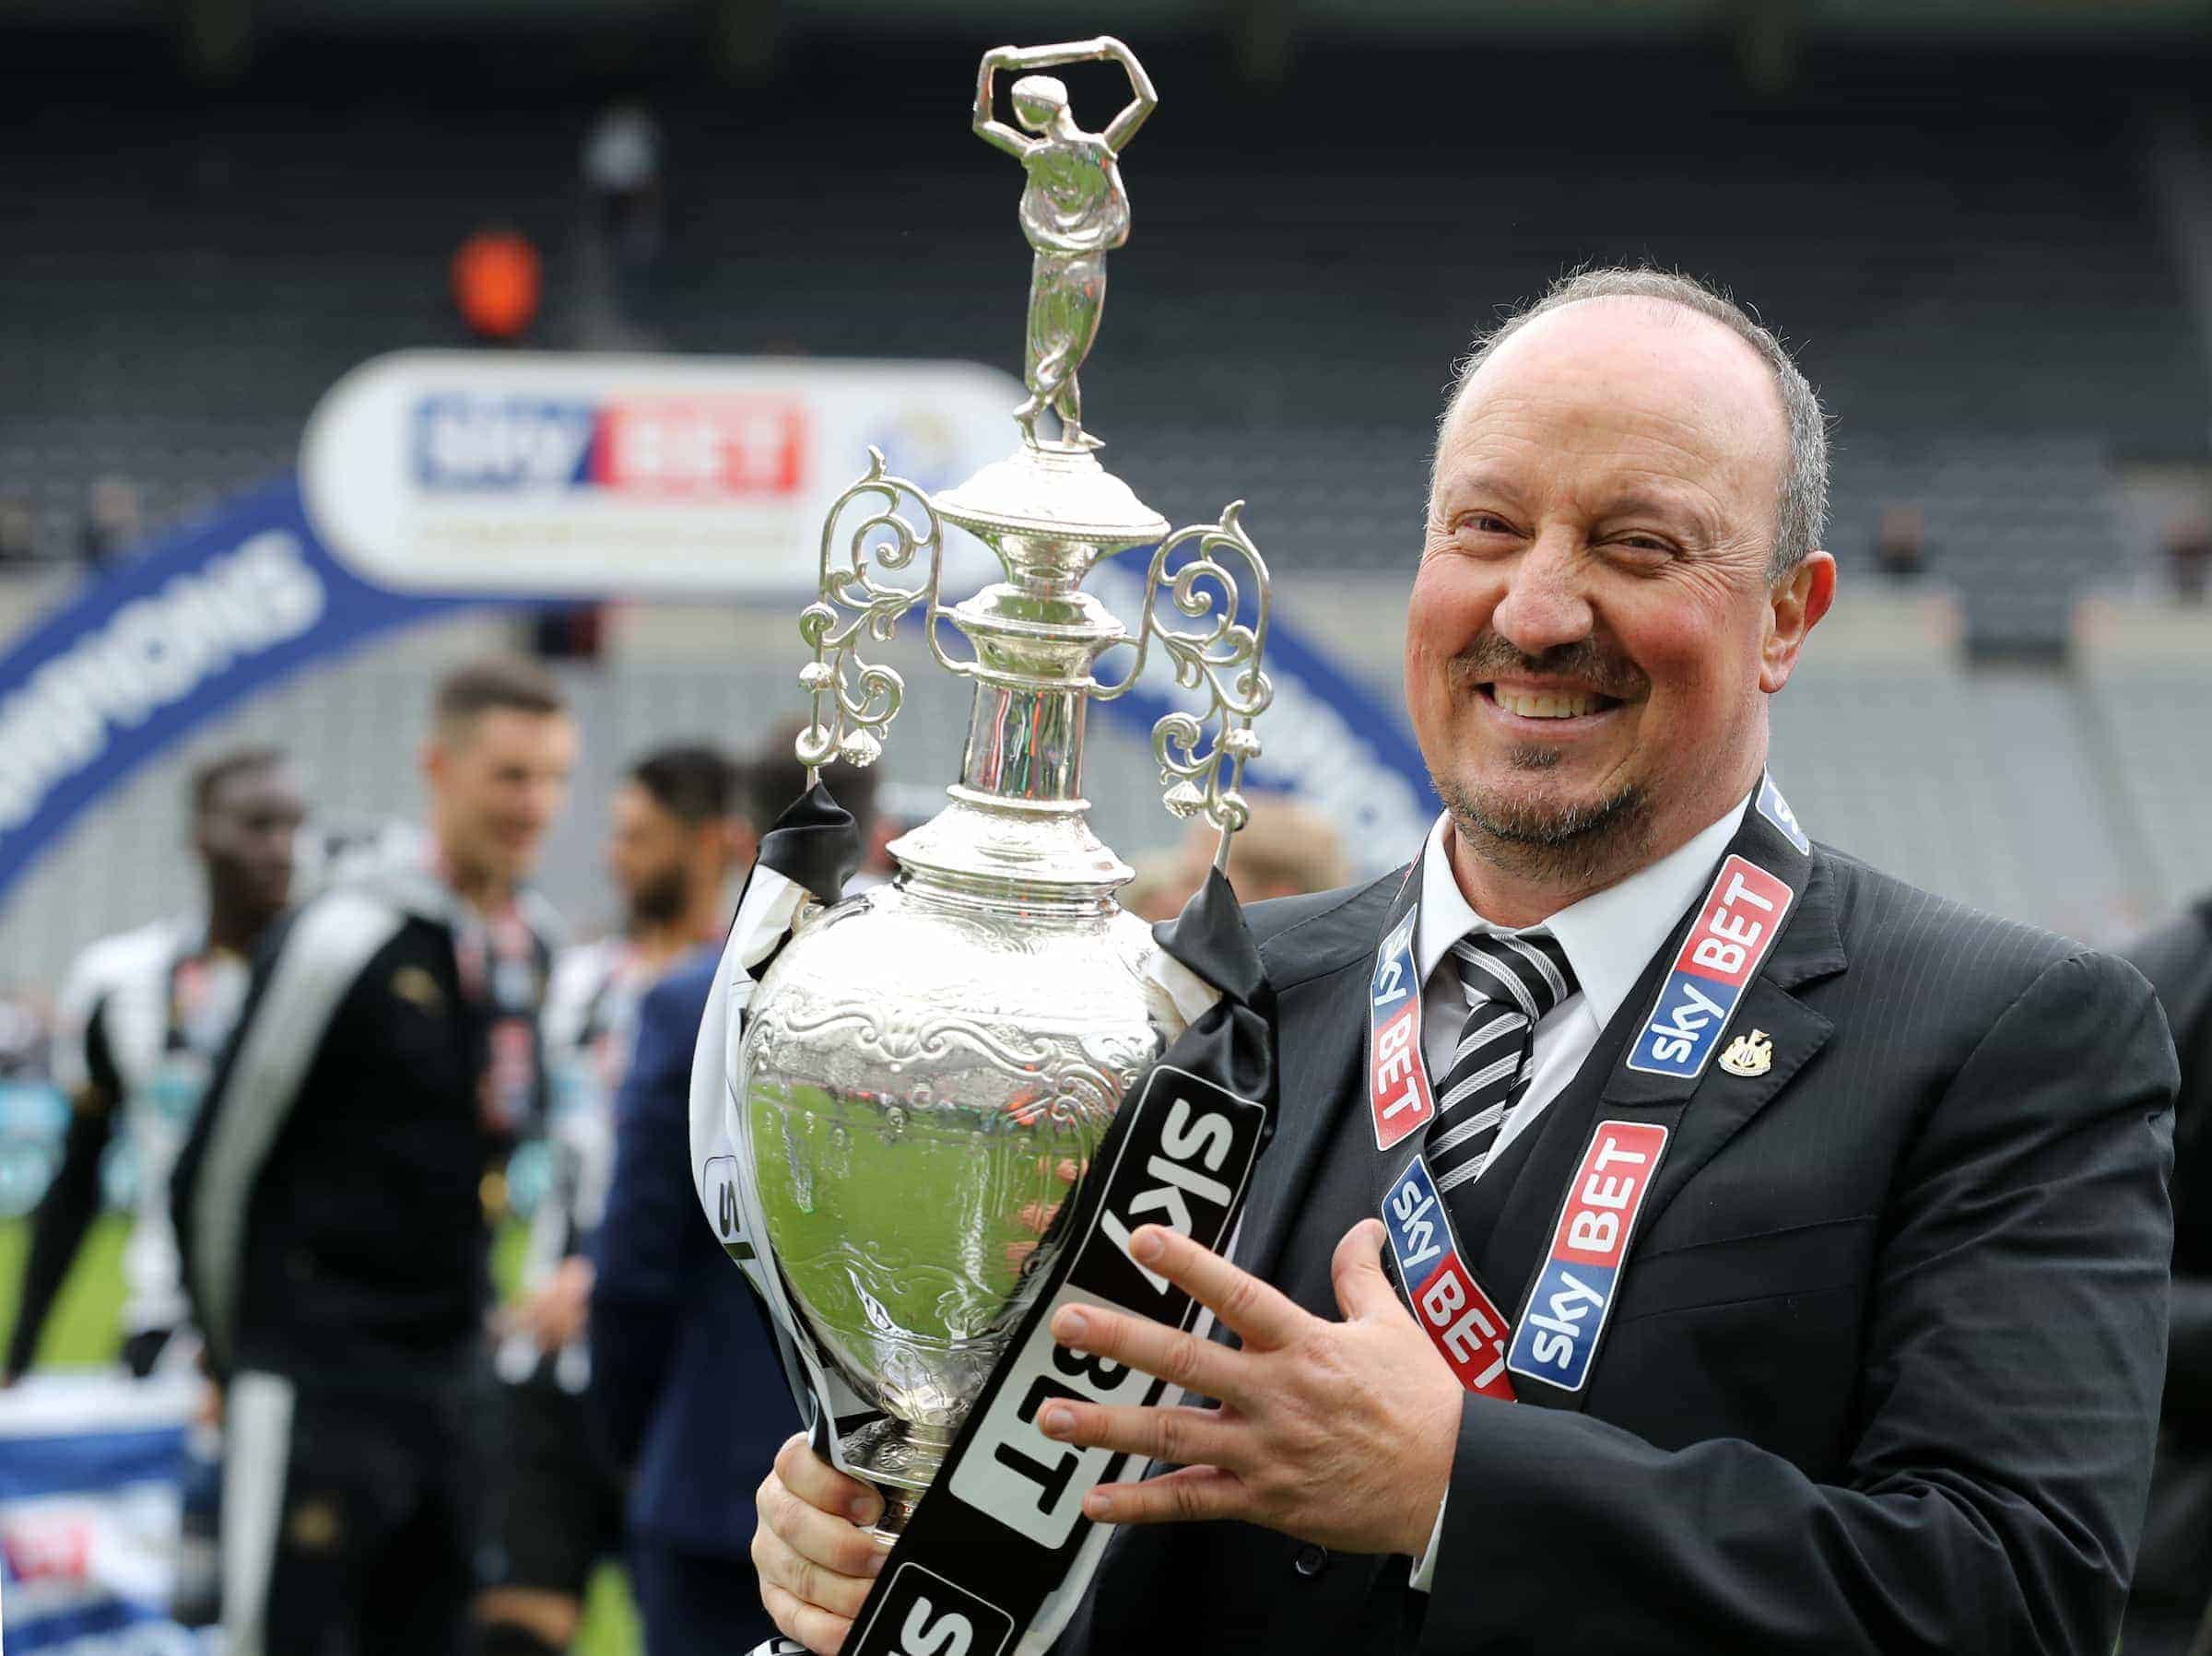 Newcastle United manager Rafa Benitez celebrates with the Sky Bet Championship trophy after the final whistle during the Sky Bet Championship match at St James' Park, Newcastle. (Photo: Owen Humphreys/PA Wire. )